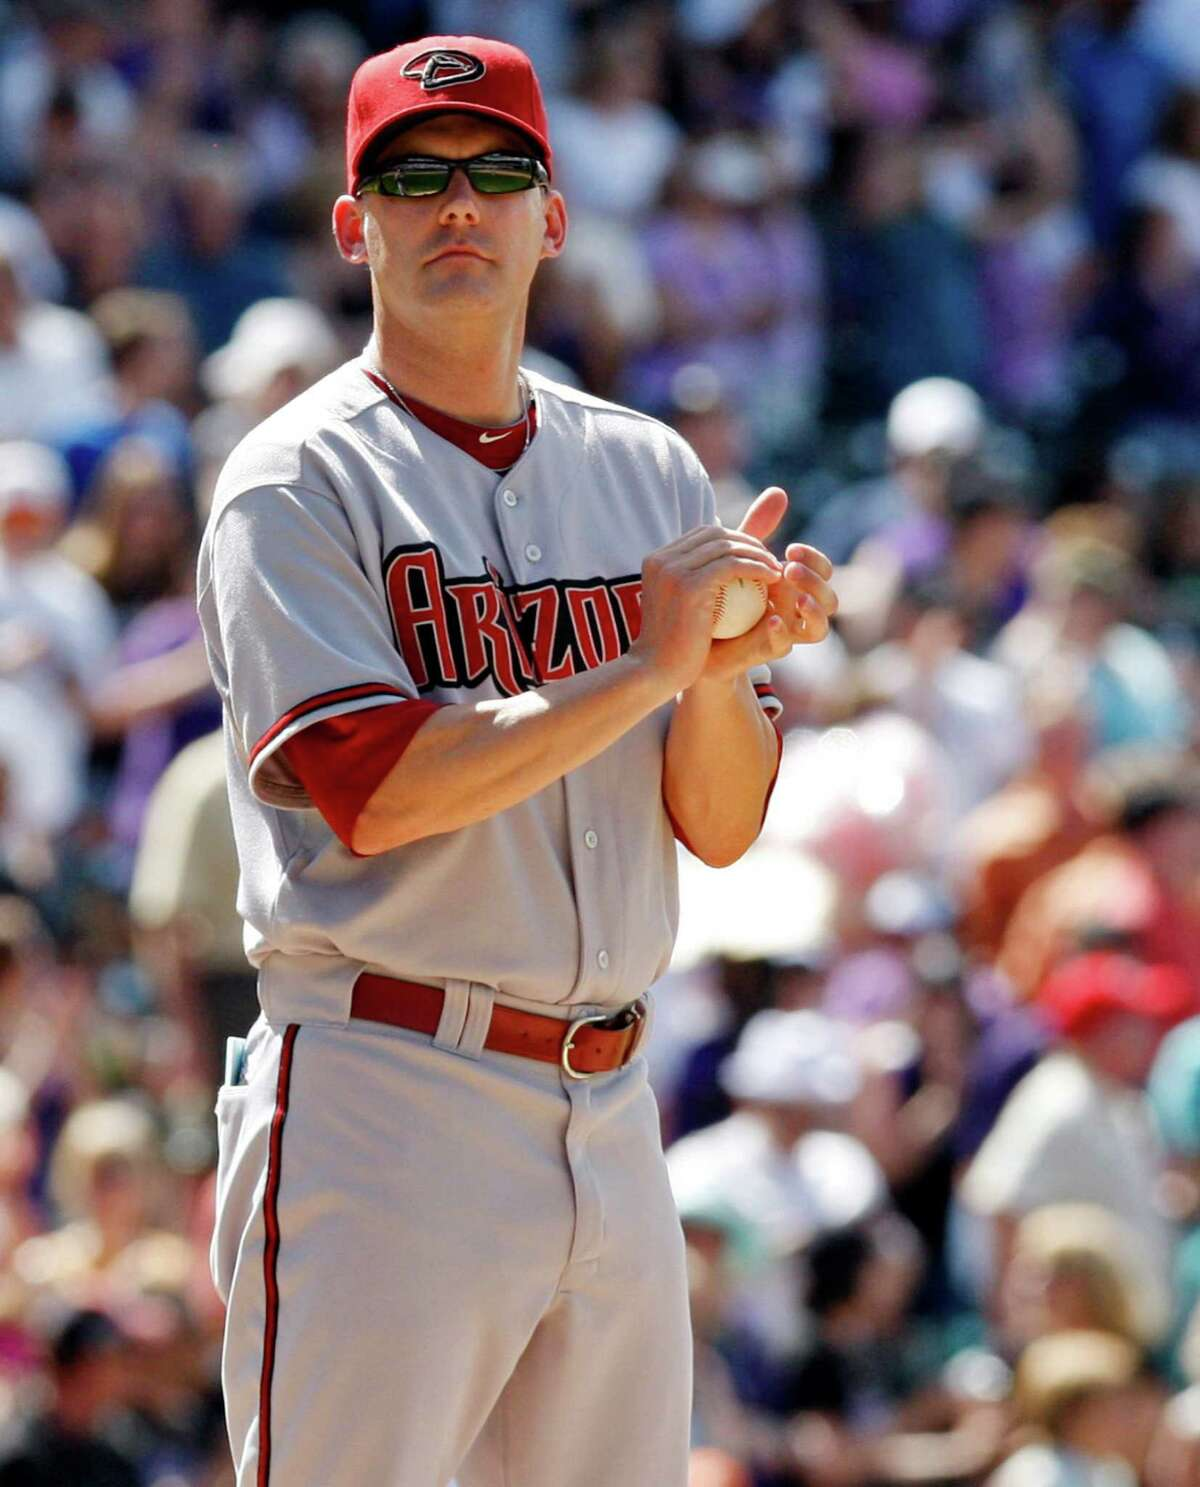 The first managerial job for A.J. Hinch at any level did not go well. He was 89-123 with the Diamondbacks in 2009-10.